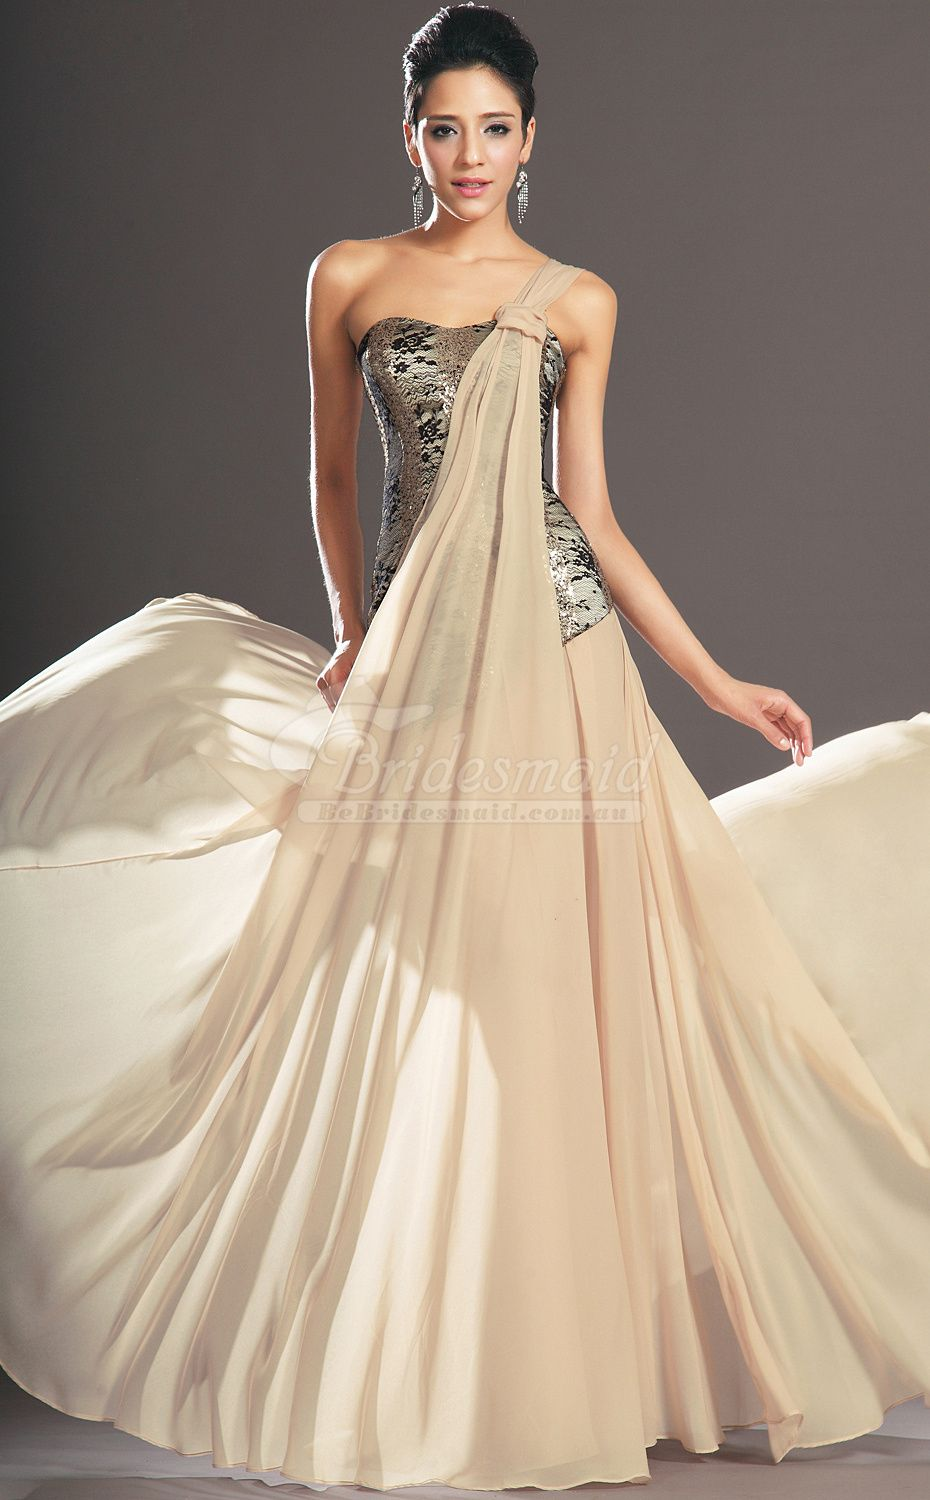 Affordable champagne lace and chiffon one shoulder long bridesmiad